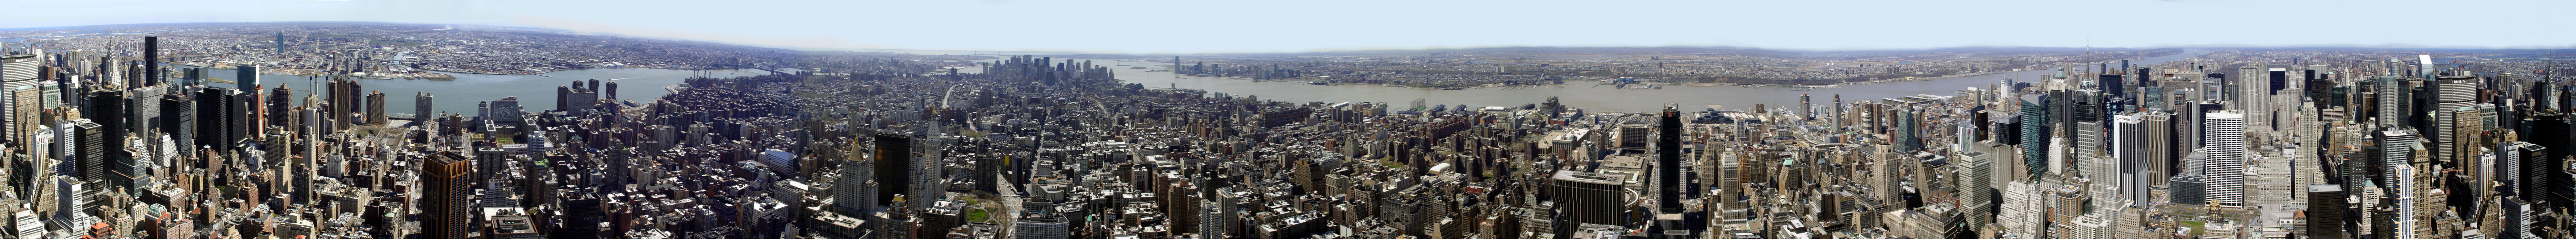 New york city panoramic view from empire state building click to